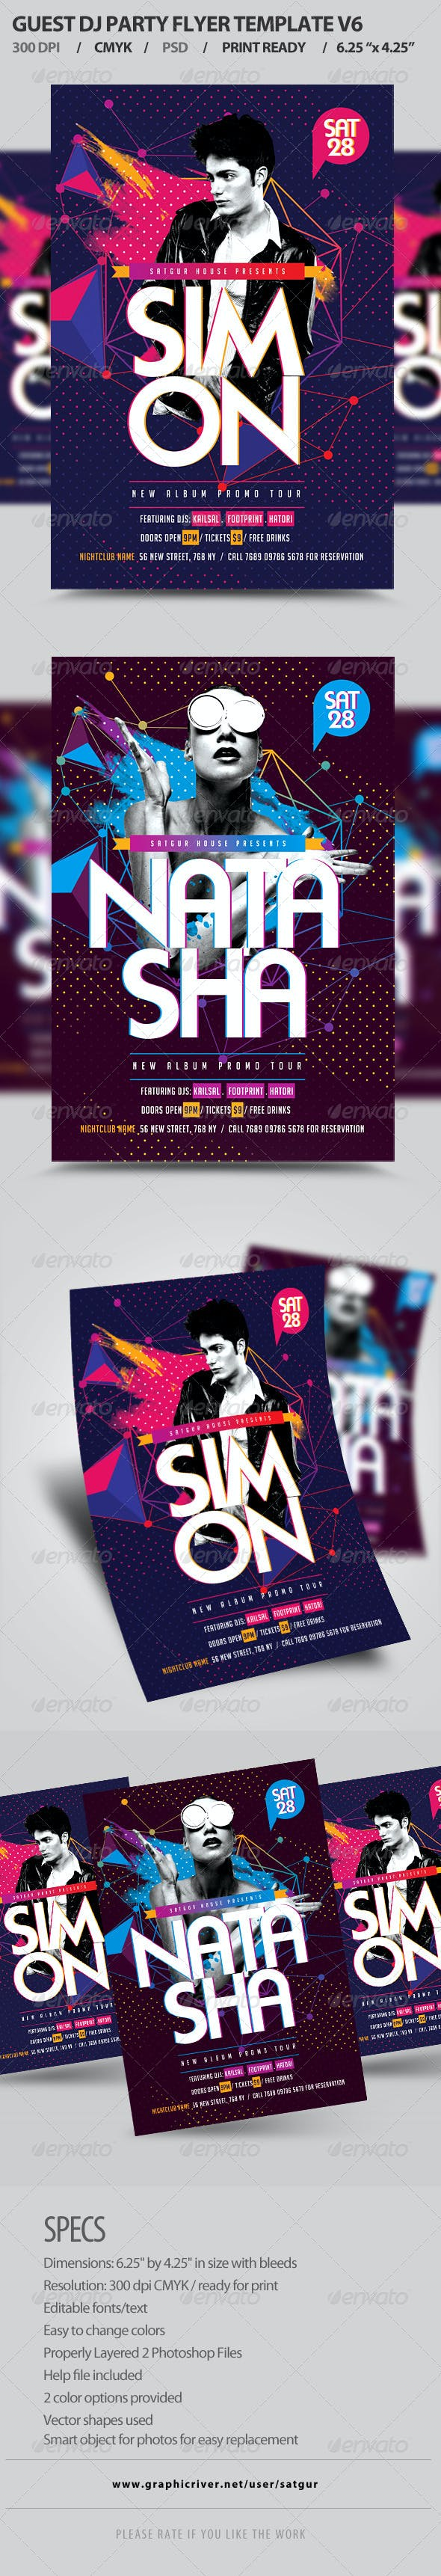 Guest DJ Party Flyer Template PSD V6